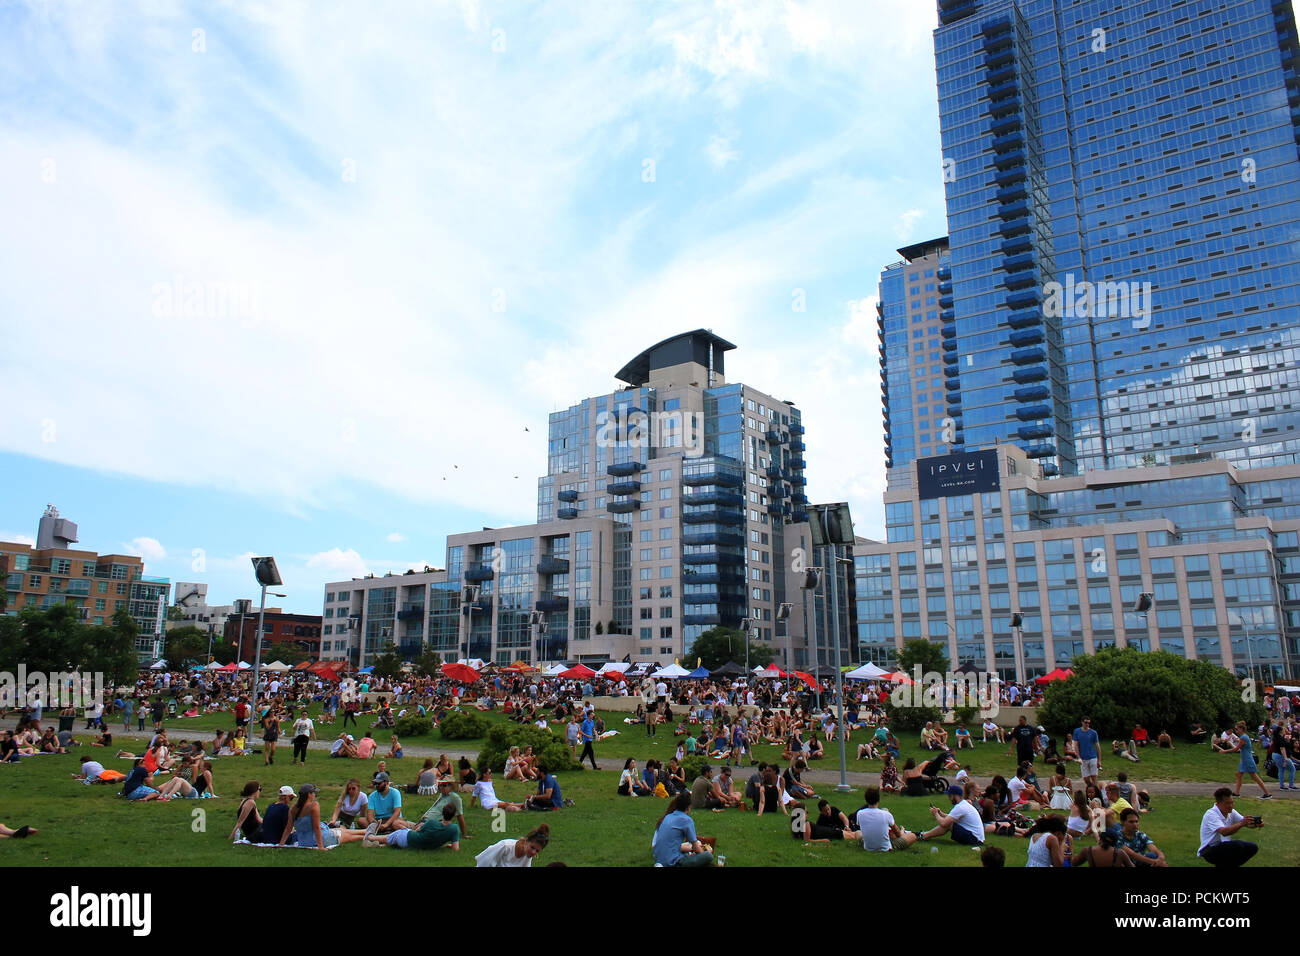 People resting on a lawn next to Smorgasburg in Williamsburg, Brooklyn on JULY 8th, 2017 in New York, USA. (Photo by Wojciech Migda) Stock Photo